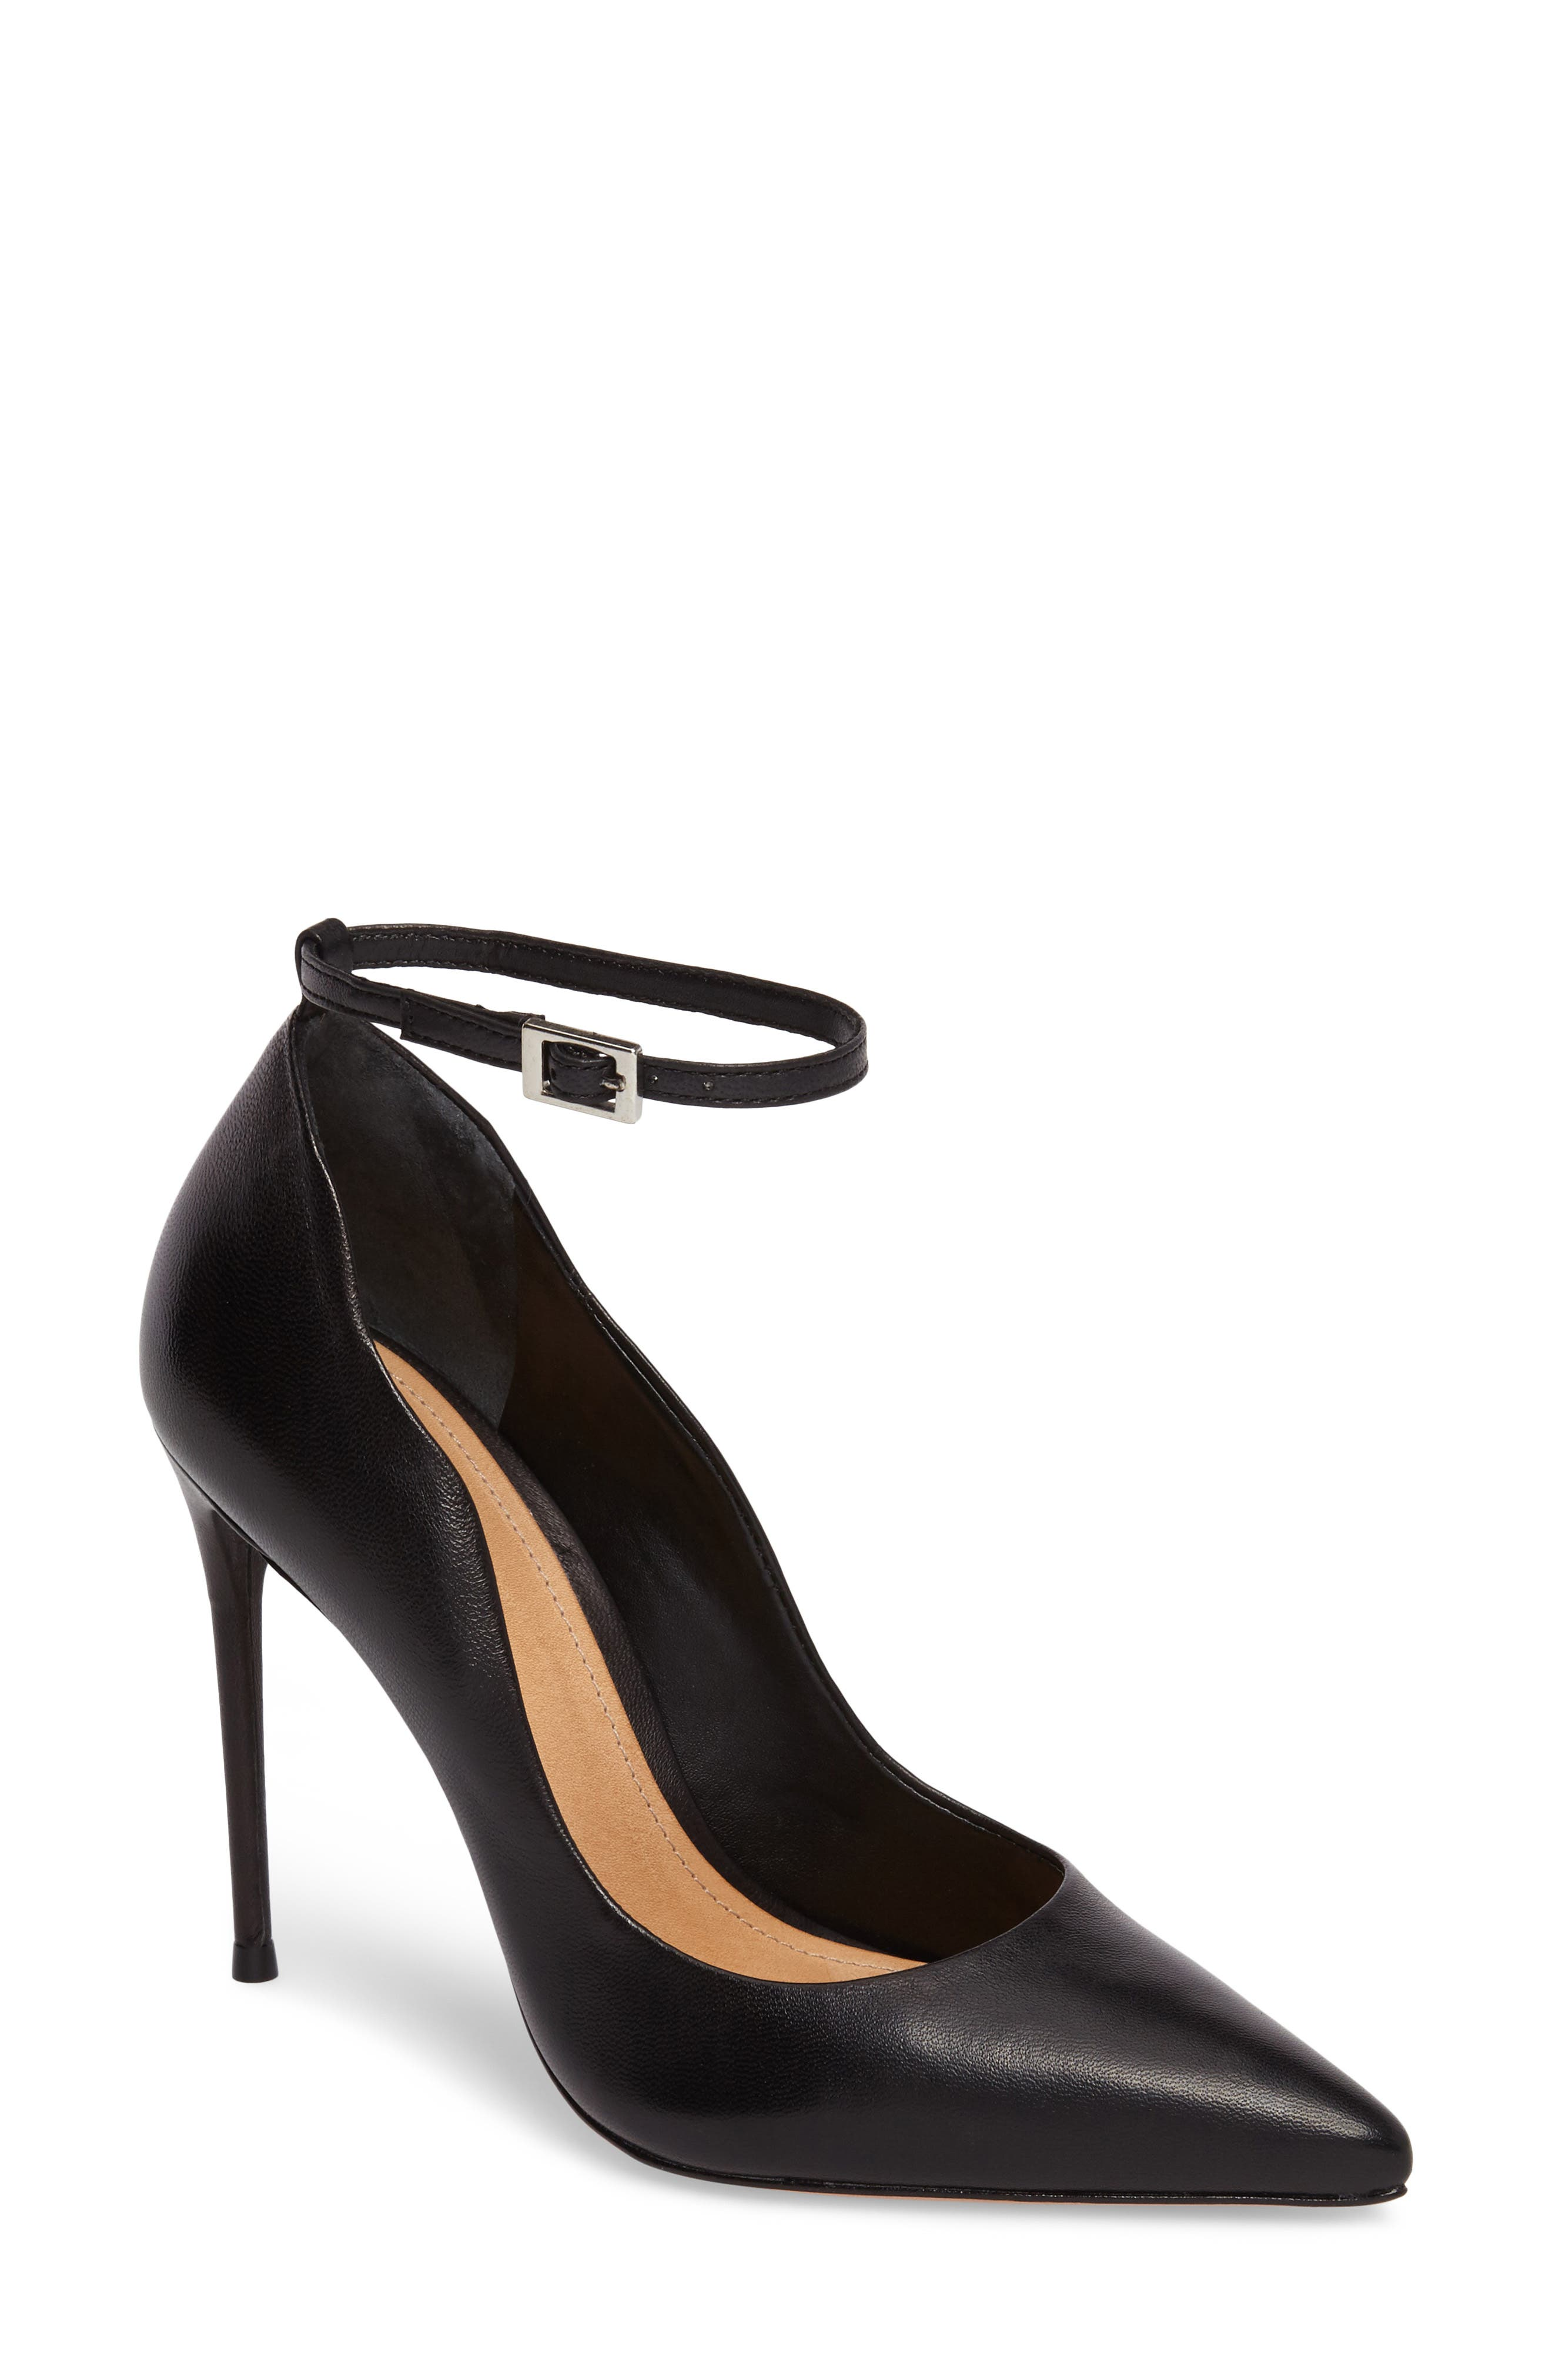 Thaynara Ankle Strap Pump,                         Main,                         color, 001